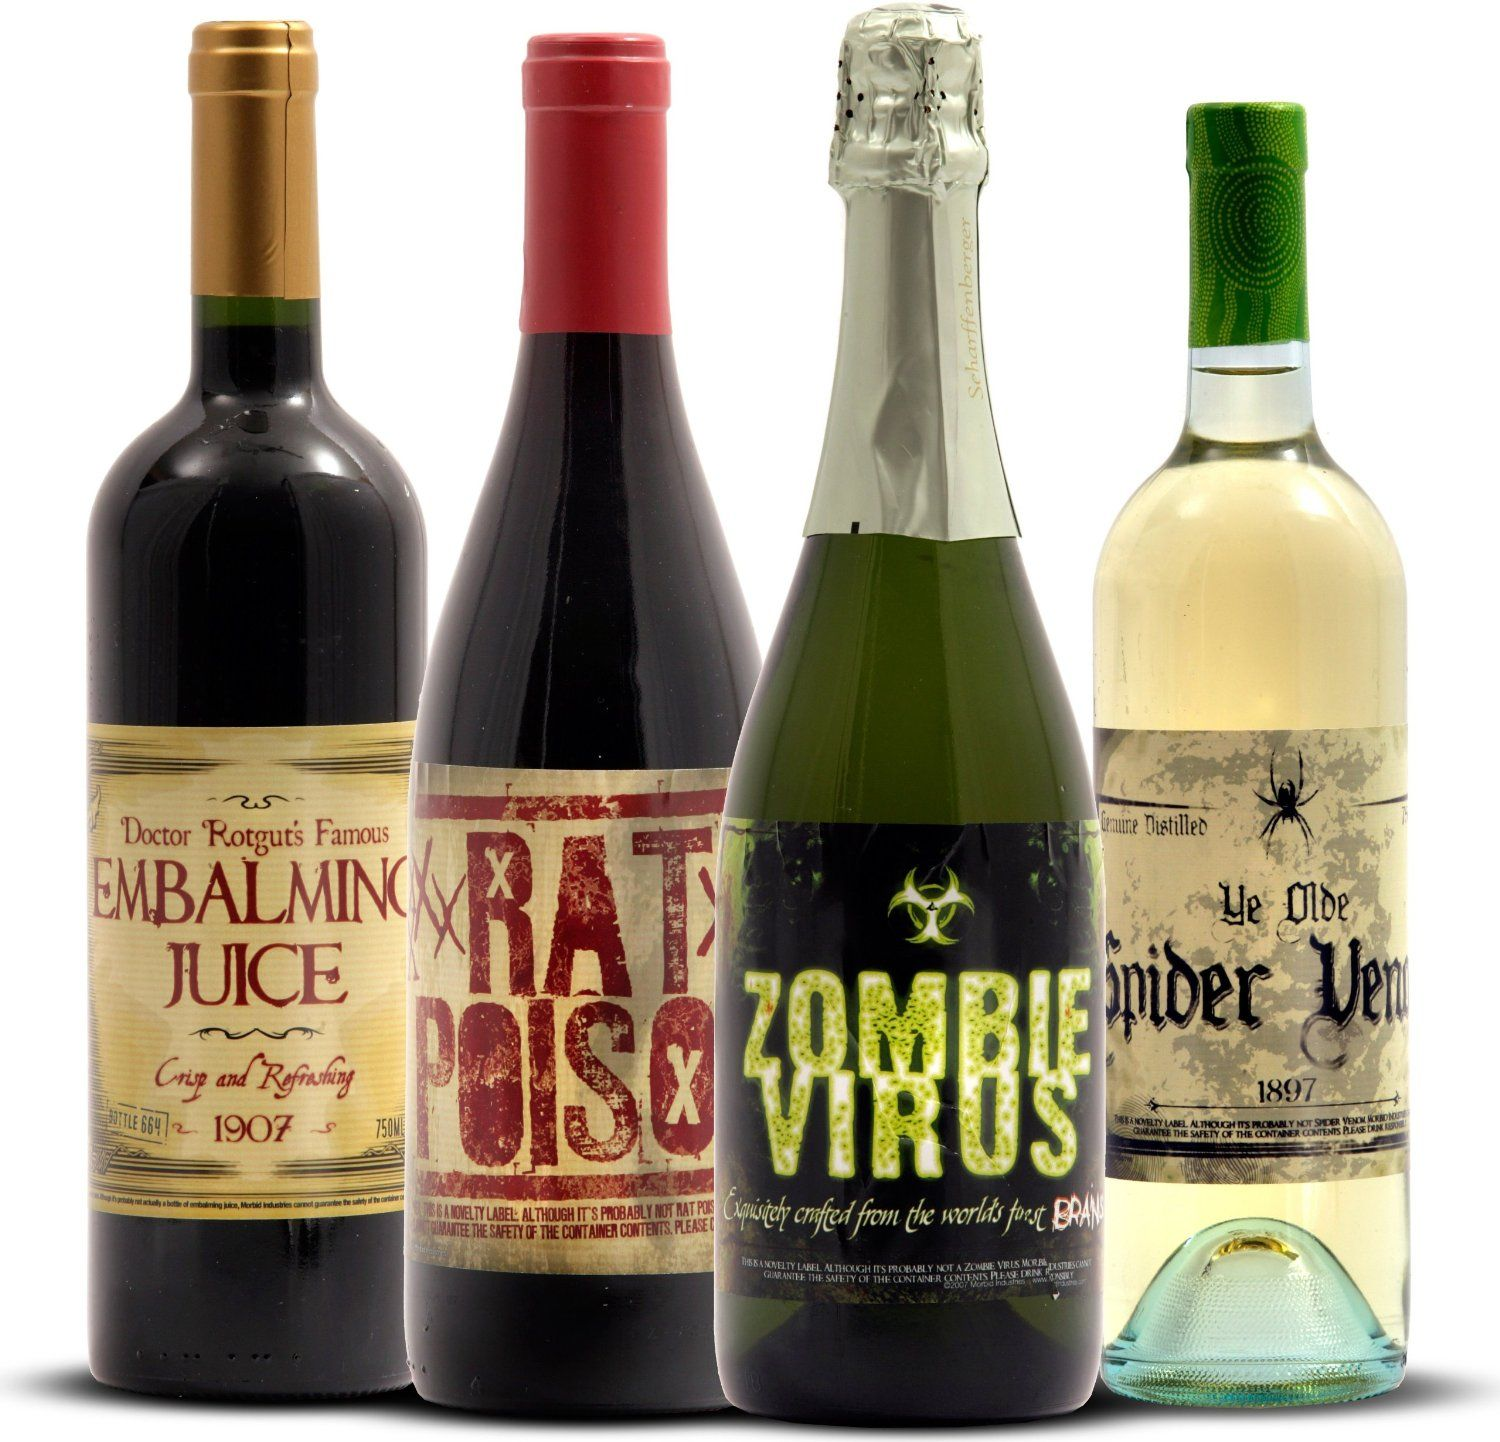 Funny and Spooky Halloween Wine Bottle Stickers - embalming juice, rat poison, zombie virus, spider venom #ad